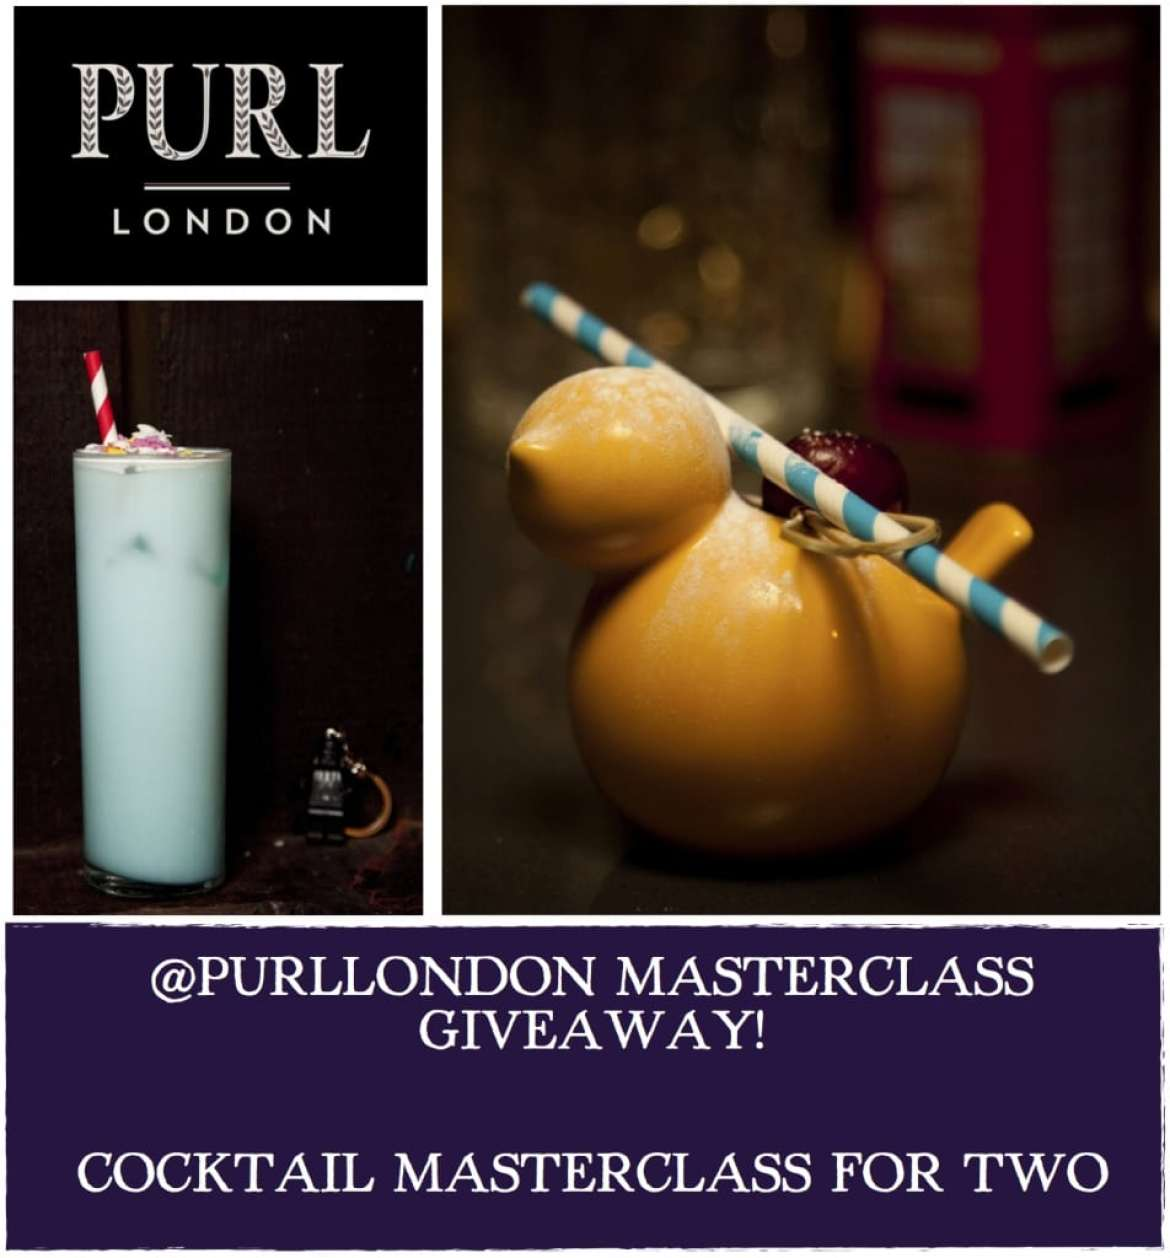 Purl Masterclass Instagram giveaway